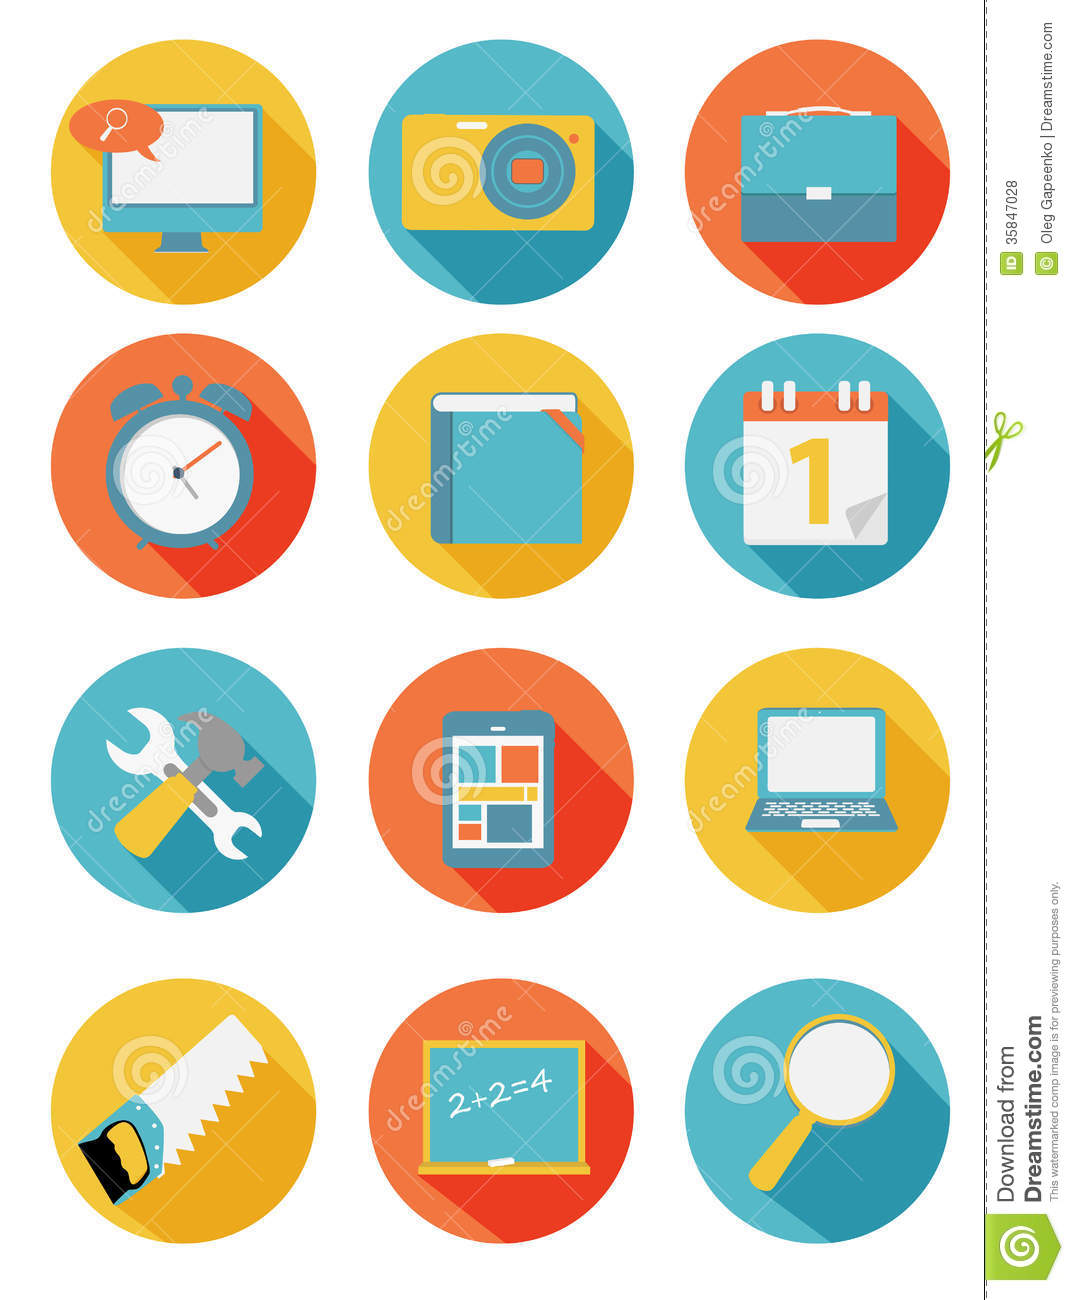 modern flat icon set for web and mobile royalty free stock playing card vector designs playing card vector designs